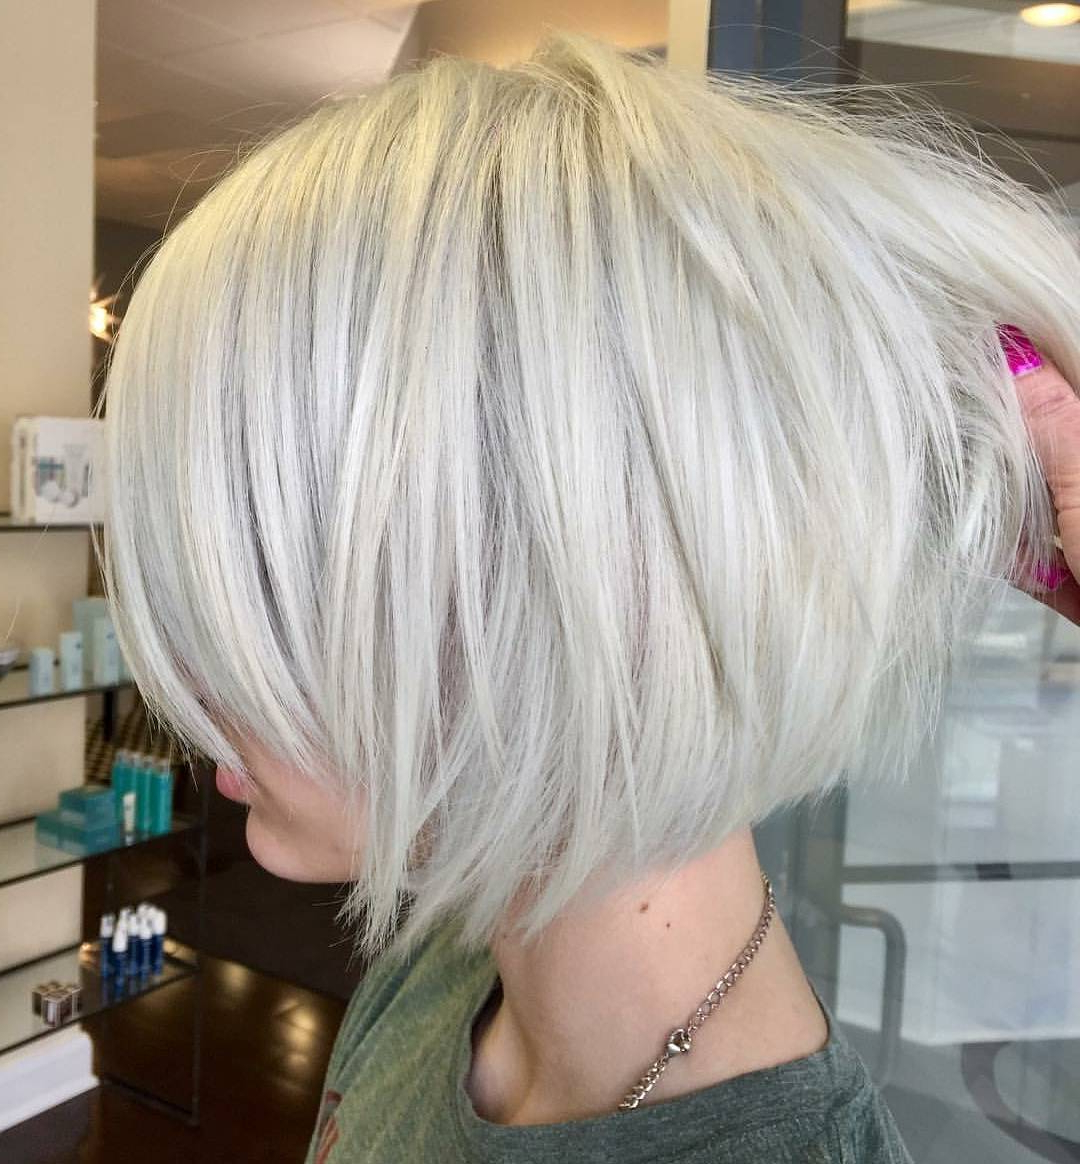 10 Layered Bob Hairstyles – Look Fab In New Blonde Shades Regarding 2019 Short Platinum Blonde Bob Hairstyles (Gallery 5 of 20)